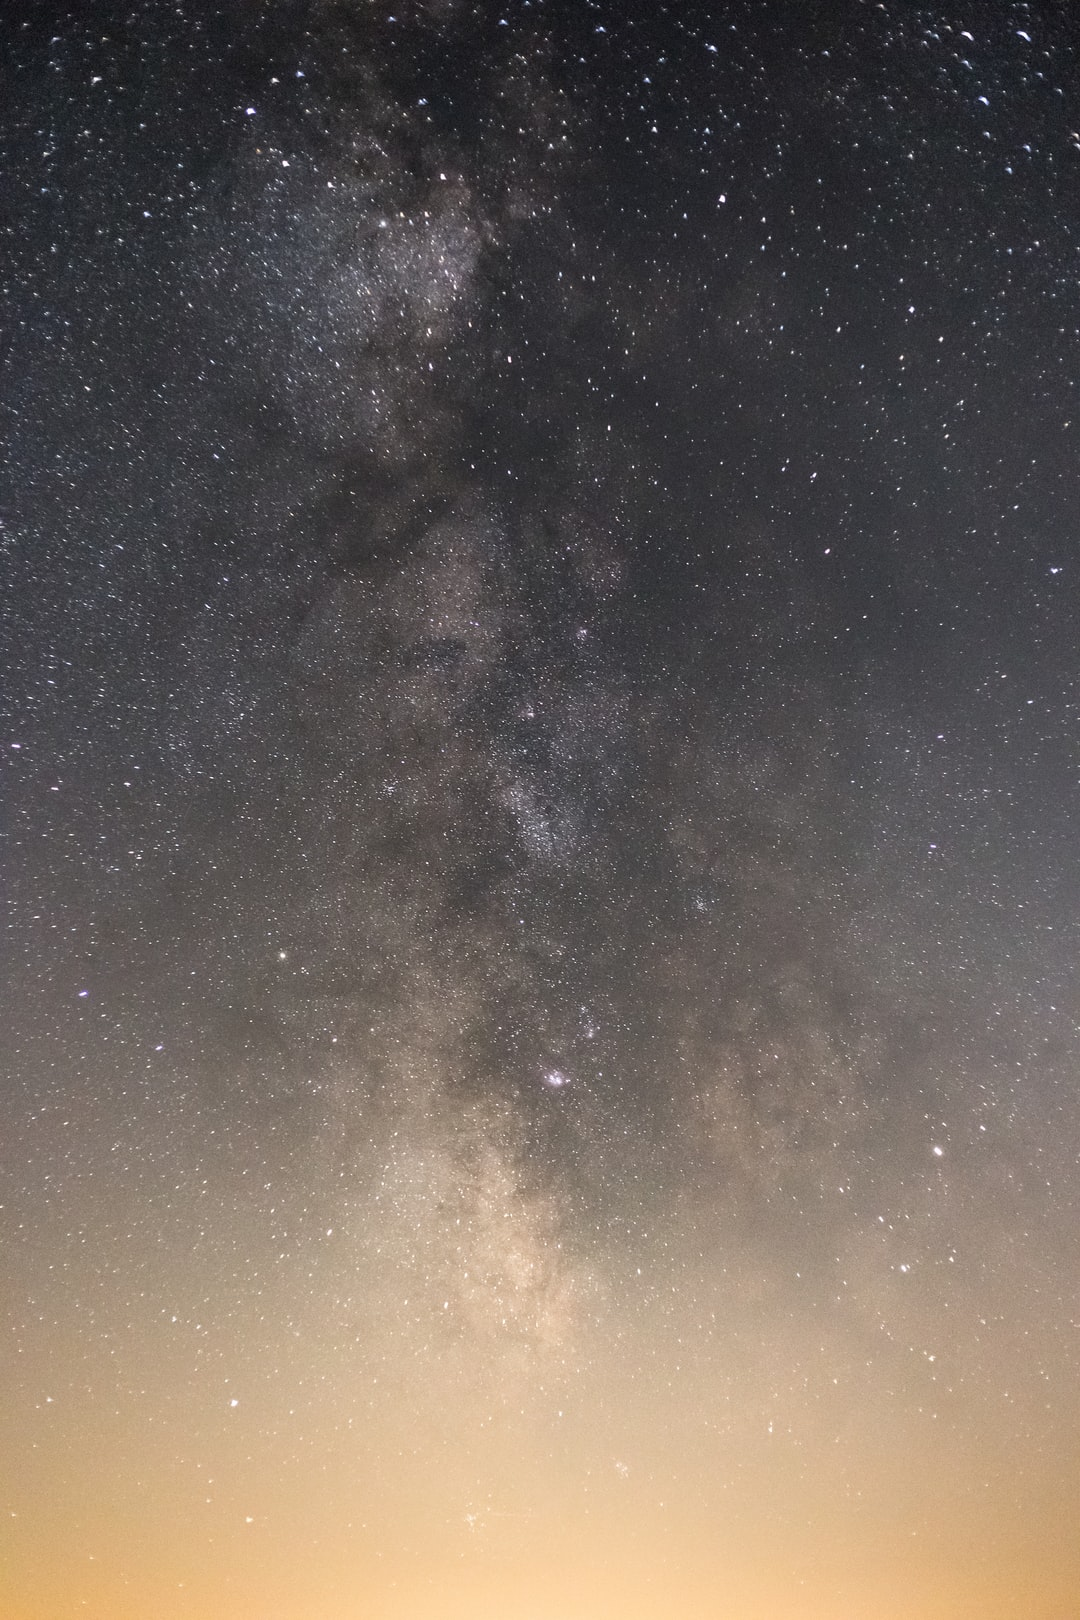 A close-up shot of the Milky Way using a 50mm. Lessons learned: I should have used a shorter exposure with higher ISO to further prevent star trailing.